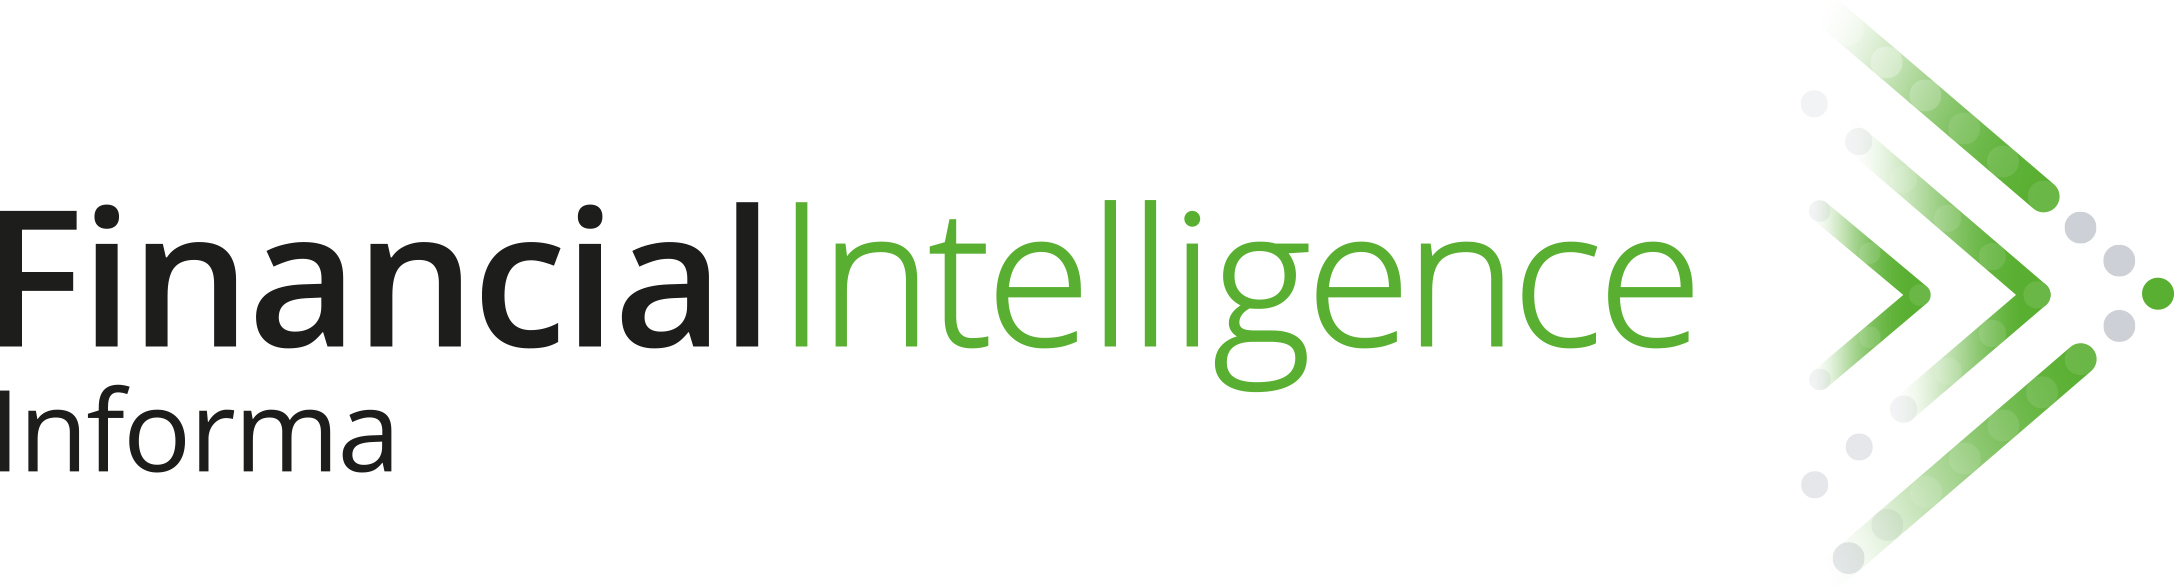 Financial Intelligence Logos_FinancialIntelligence_RGB.jpg